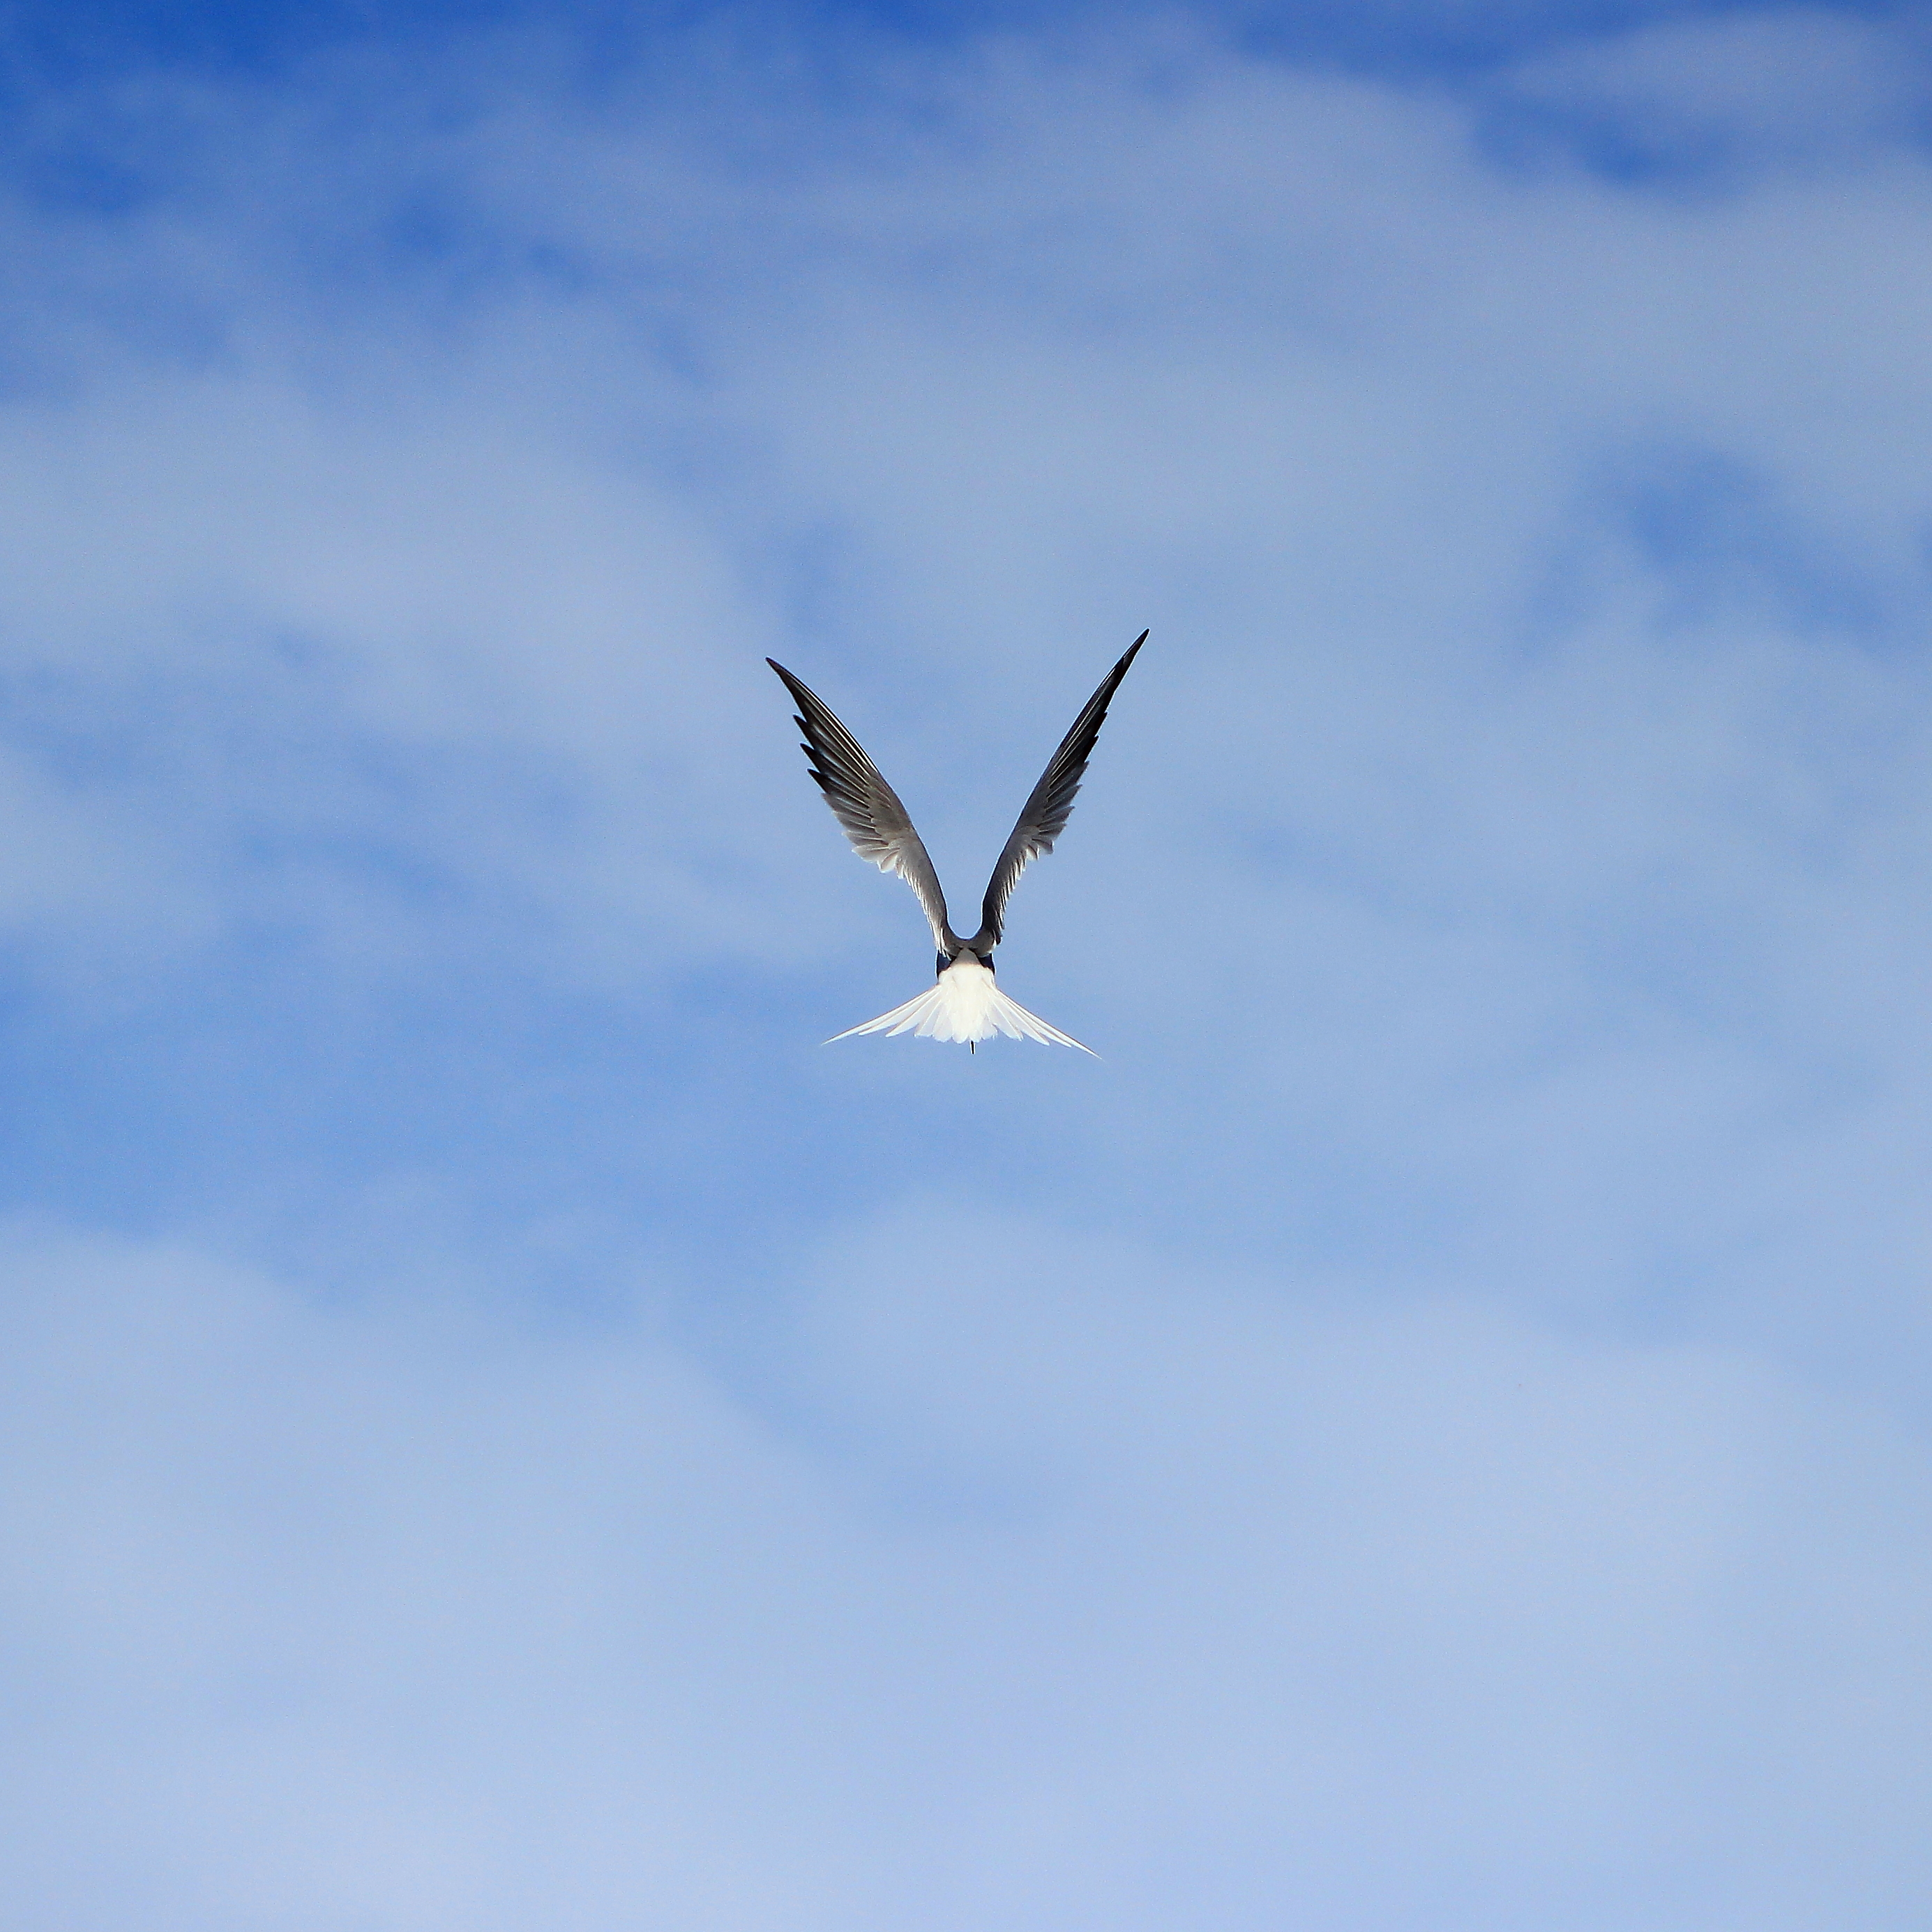 153266 download wallpaper Animals, Gull, Seagull, Bird, Wings, Sky, Flight screensavers and pictures for free